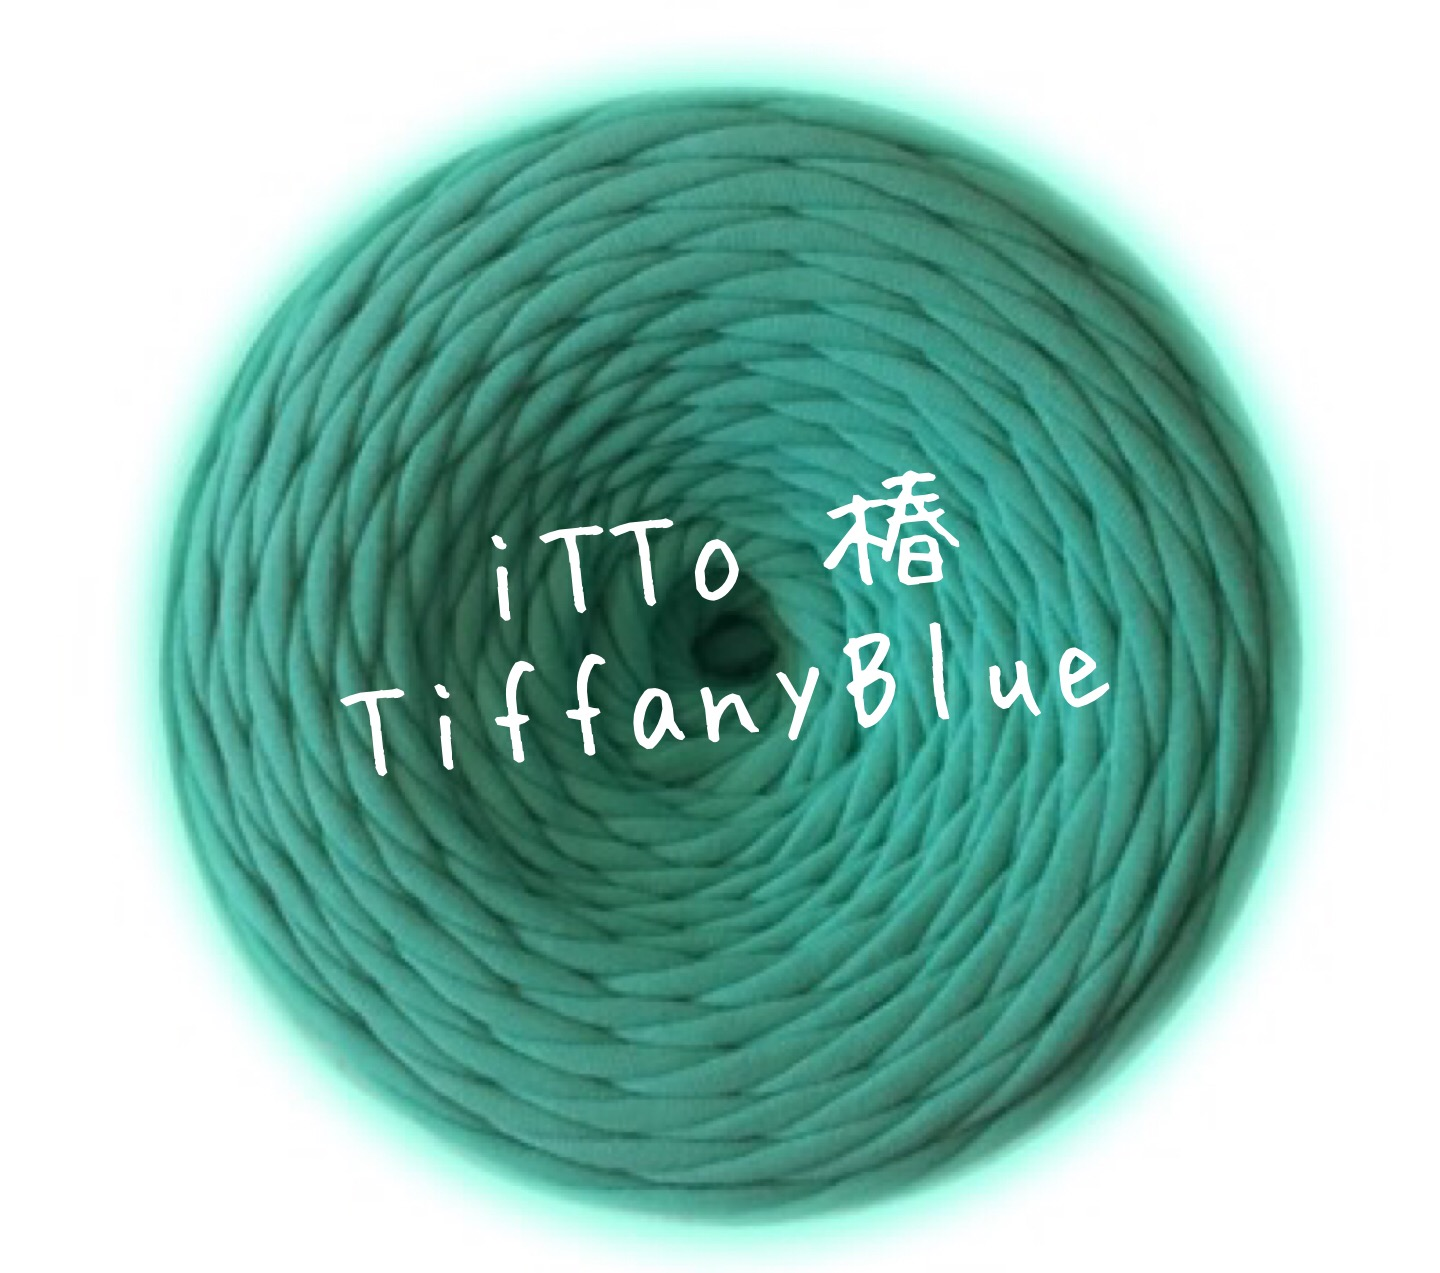 iTTo 椿 Tiffany Blue 1,850円